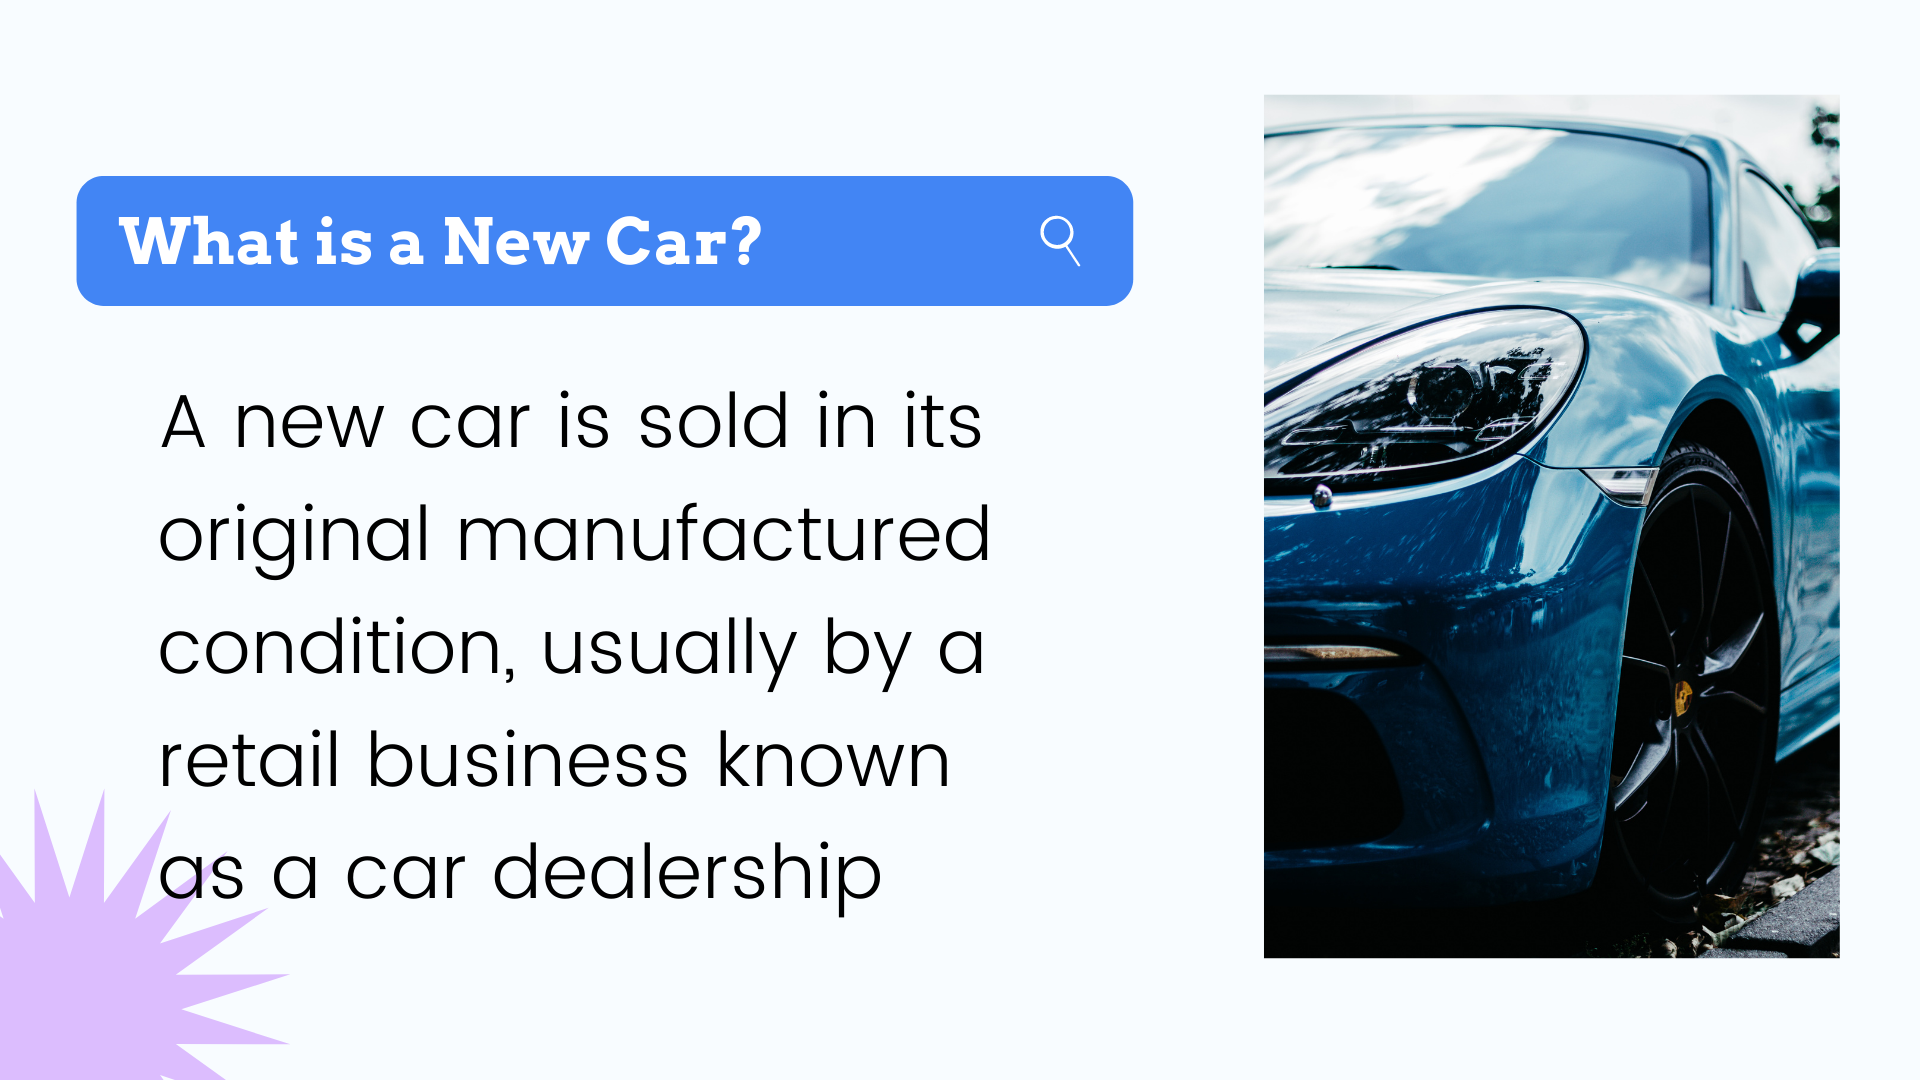 A new car is sold in its original manufactured condition, usually by a retail business known as a car dealership